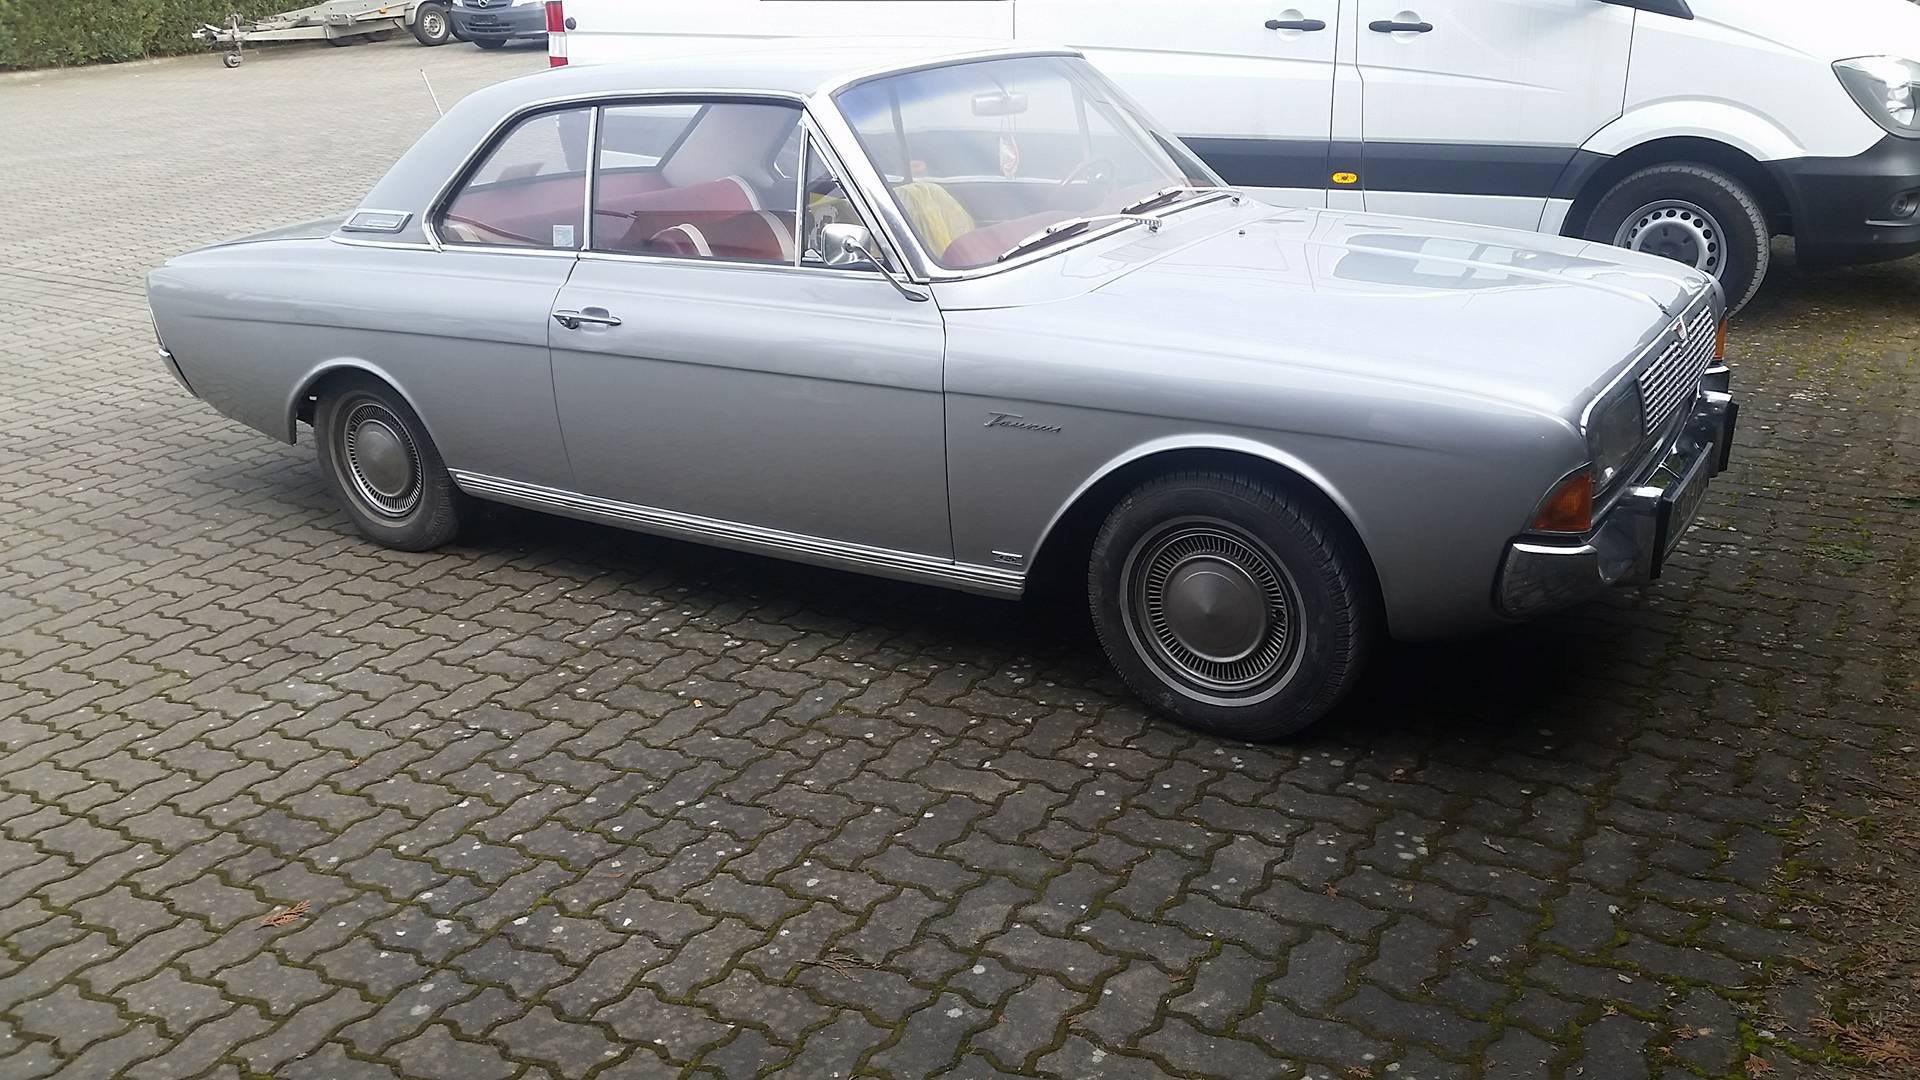 Ford P5 Hardtop V6 Coupe Bj 66